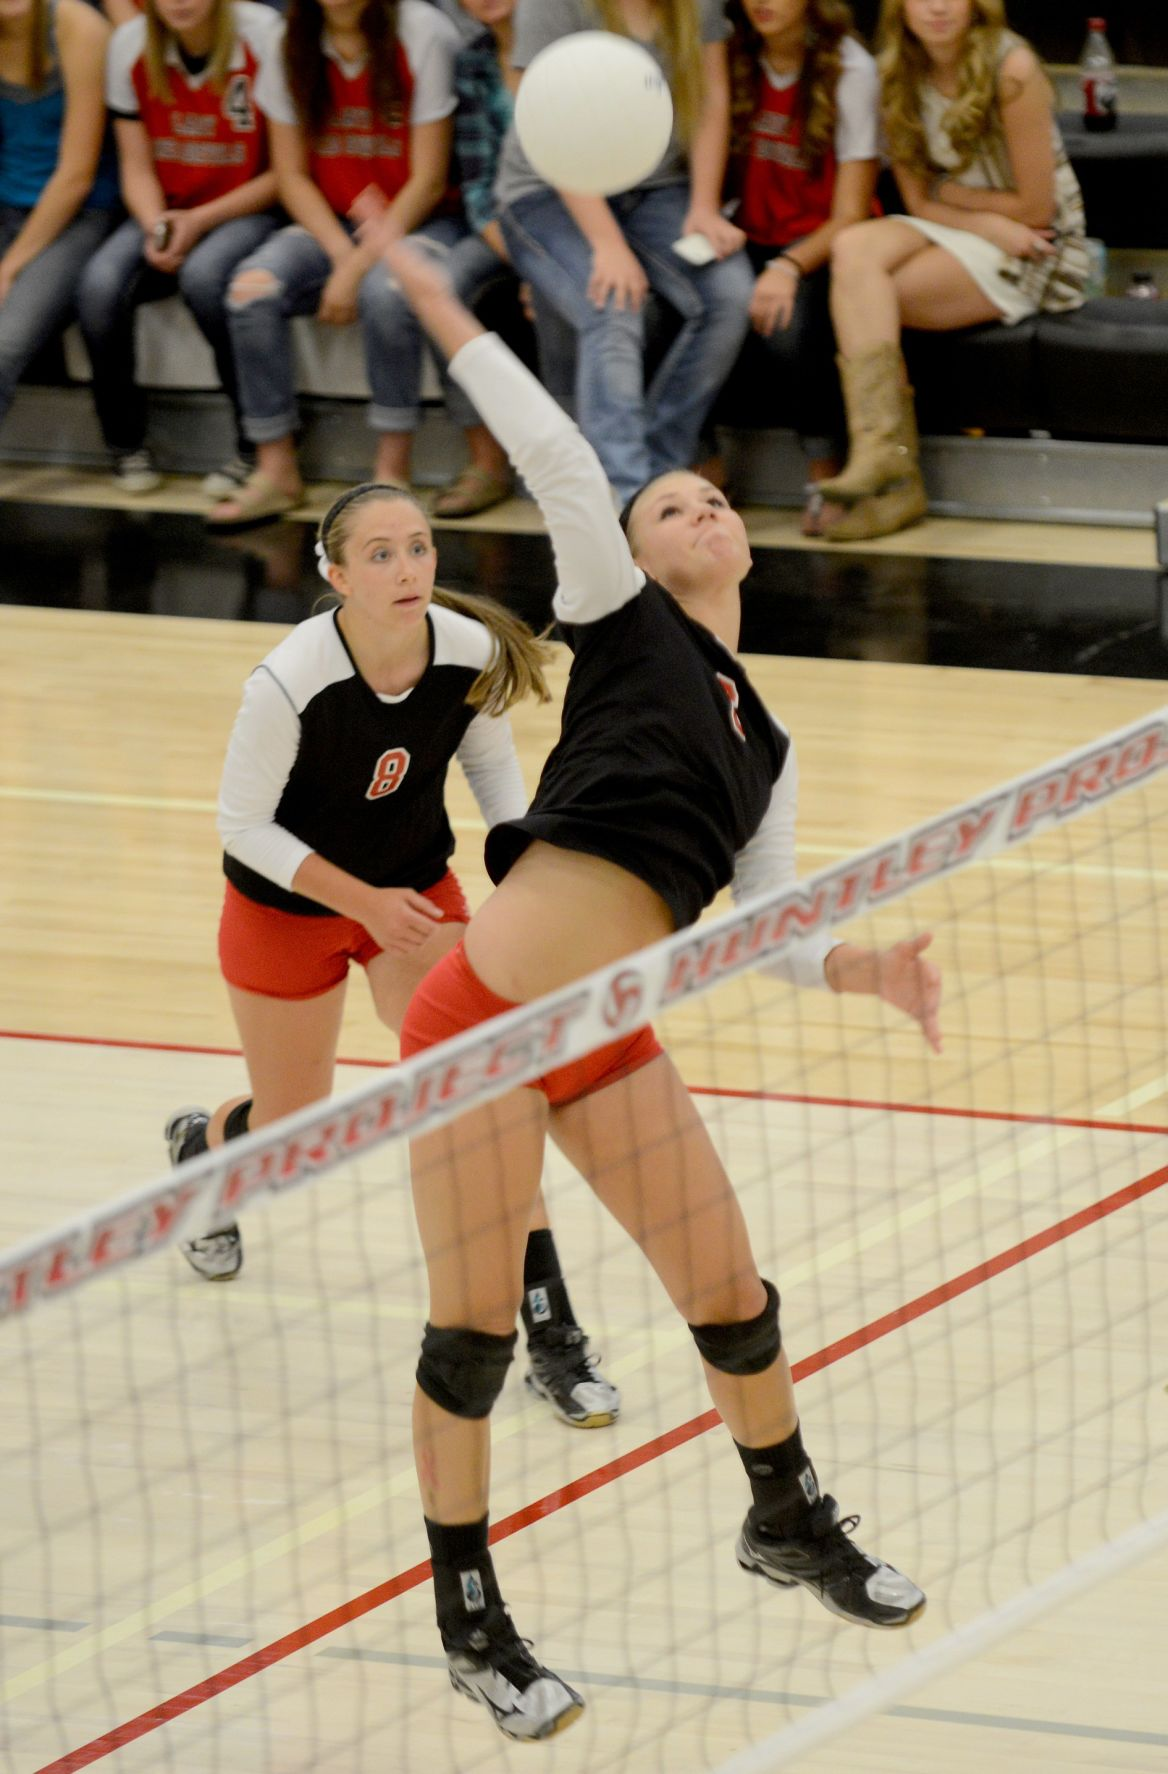 Huntley's Cady Siemion spikes the ball